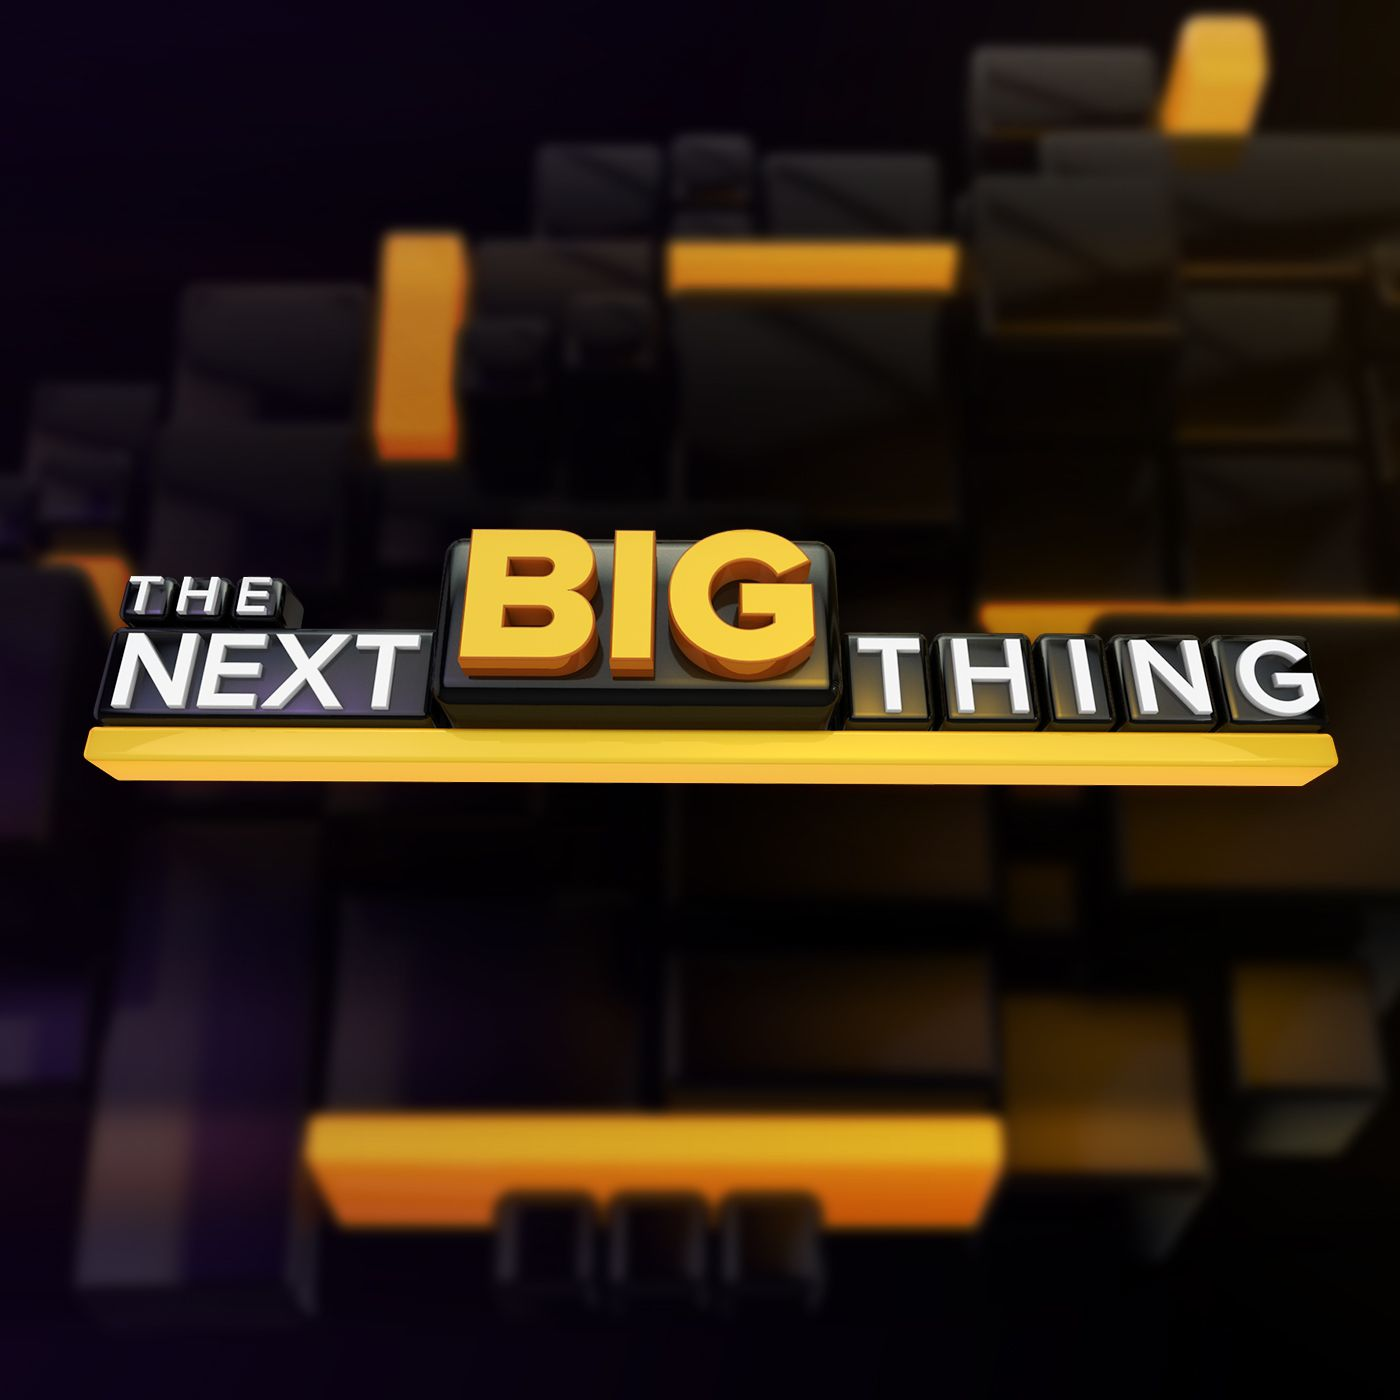 The Next Big Thing (HD)